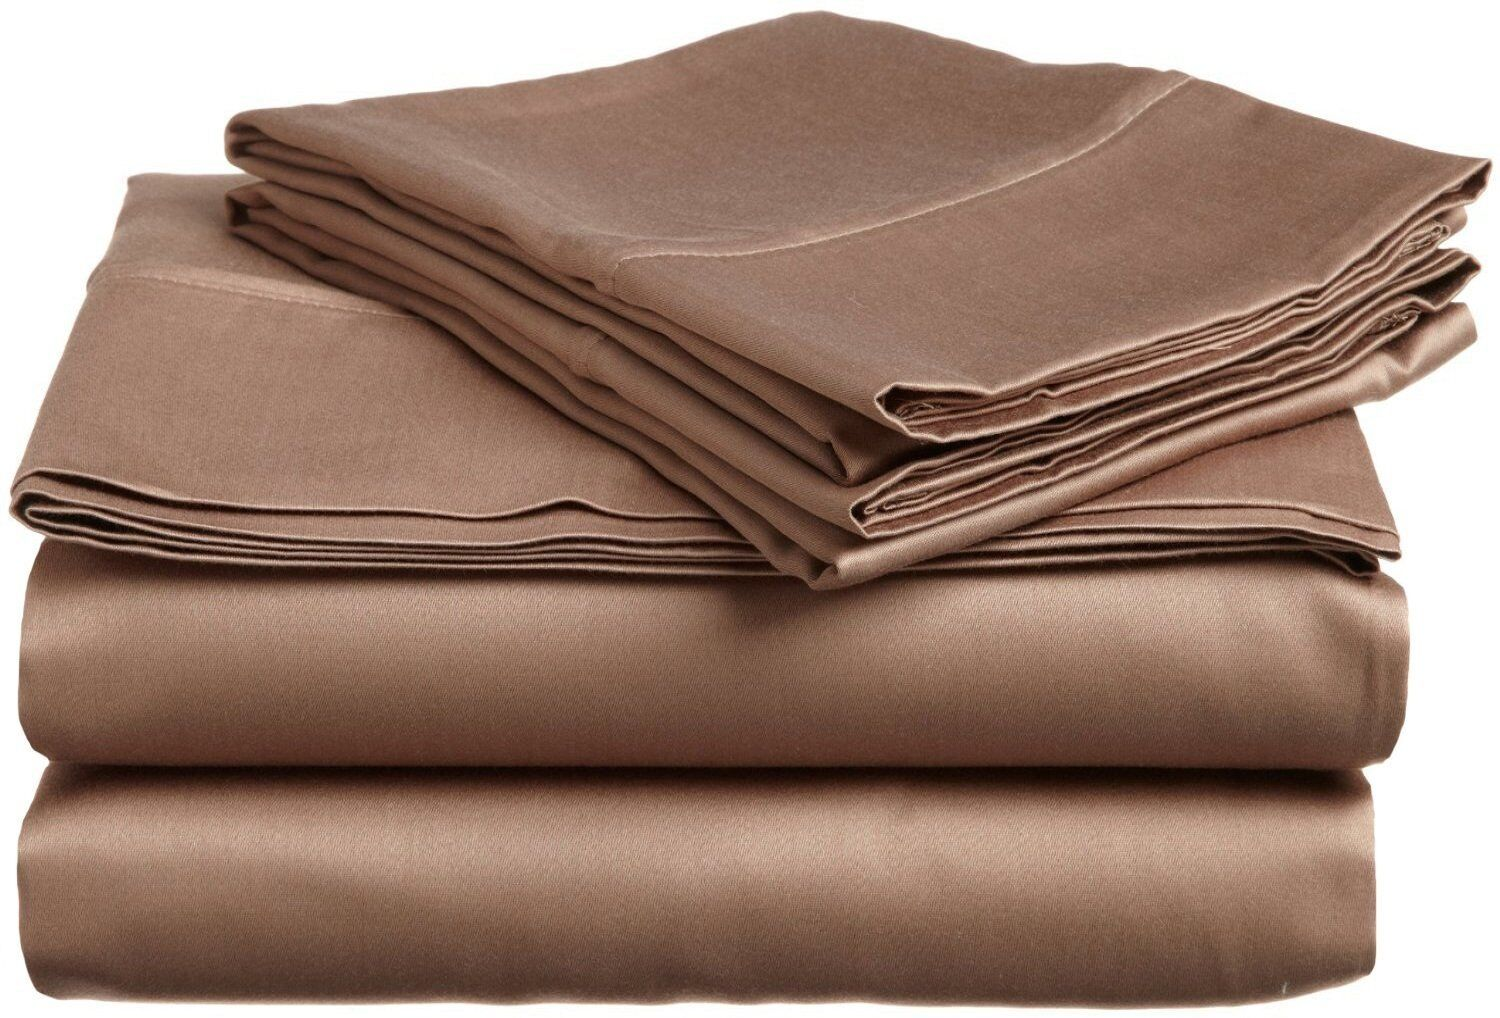 Sheet Set -Taupe Solid - Egyptian Cotton Sizes & Deep Free Shipping USA 1000TC